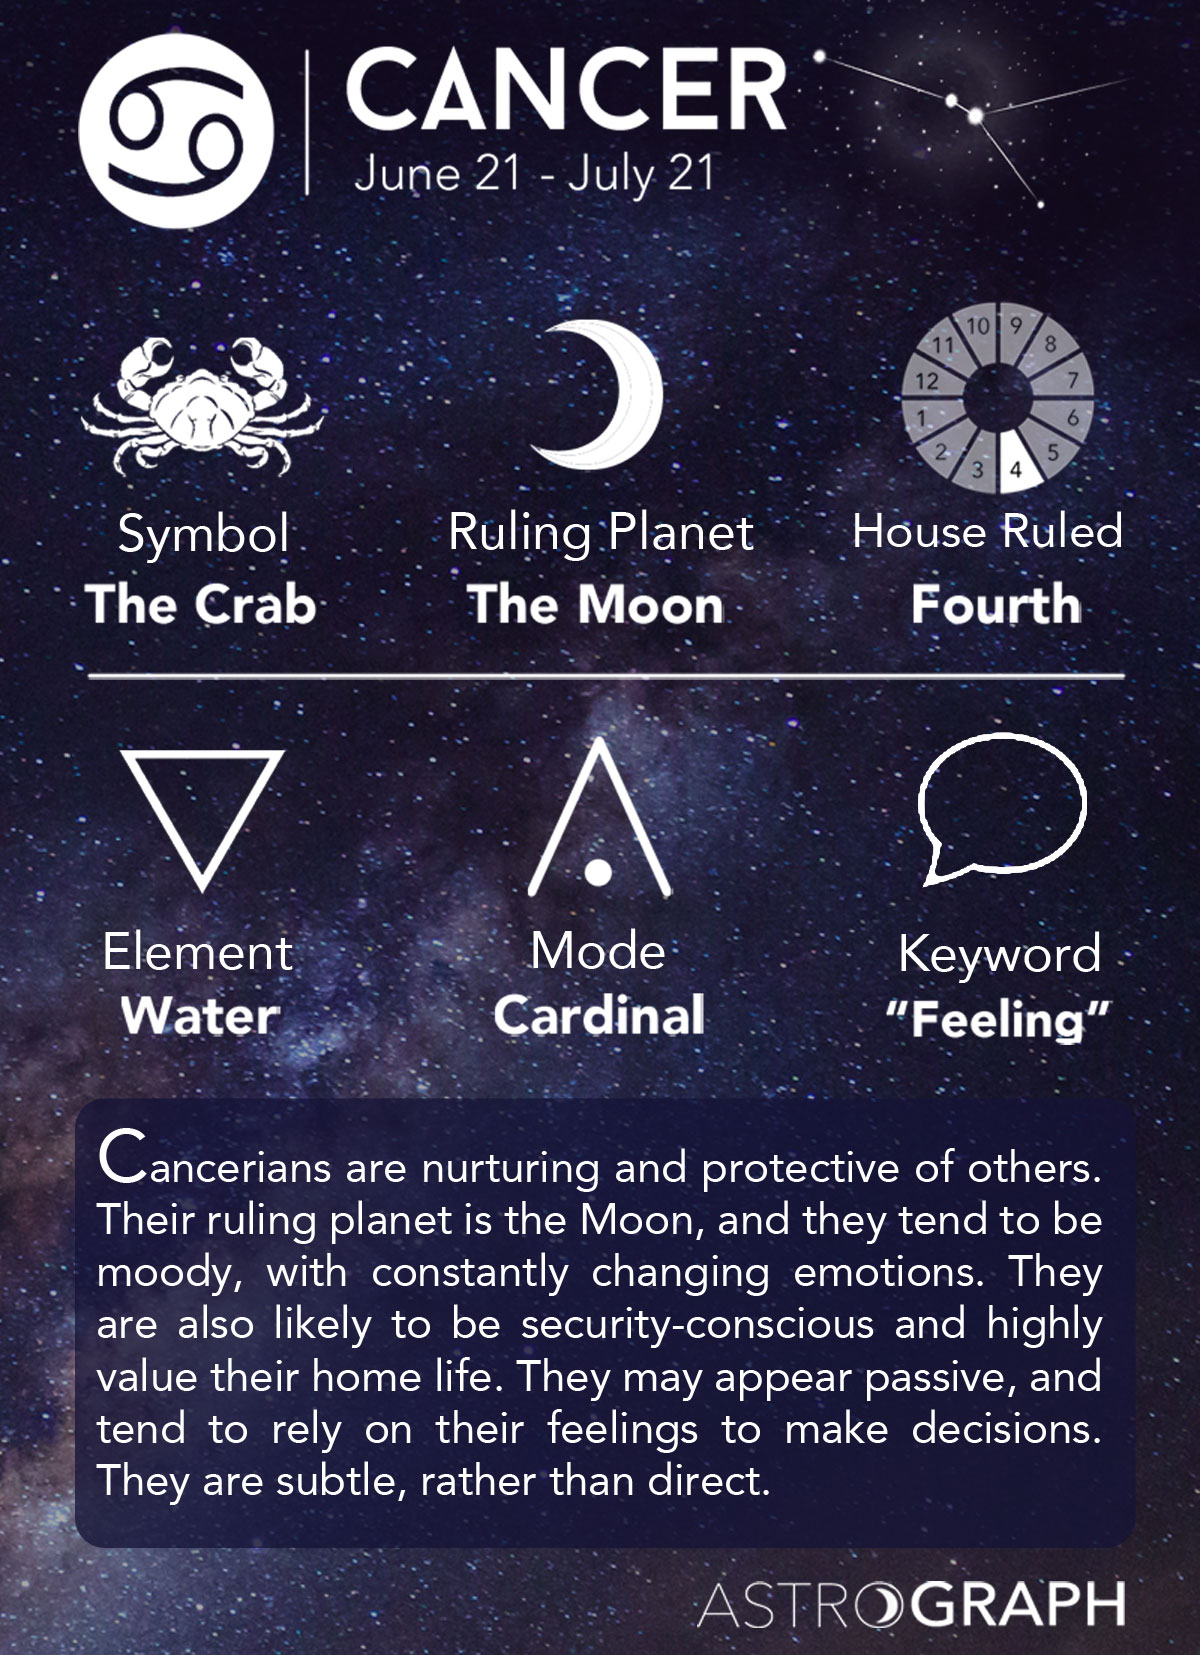 Zodiac Signs Astrograph Cancer In Astrology